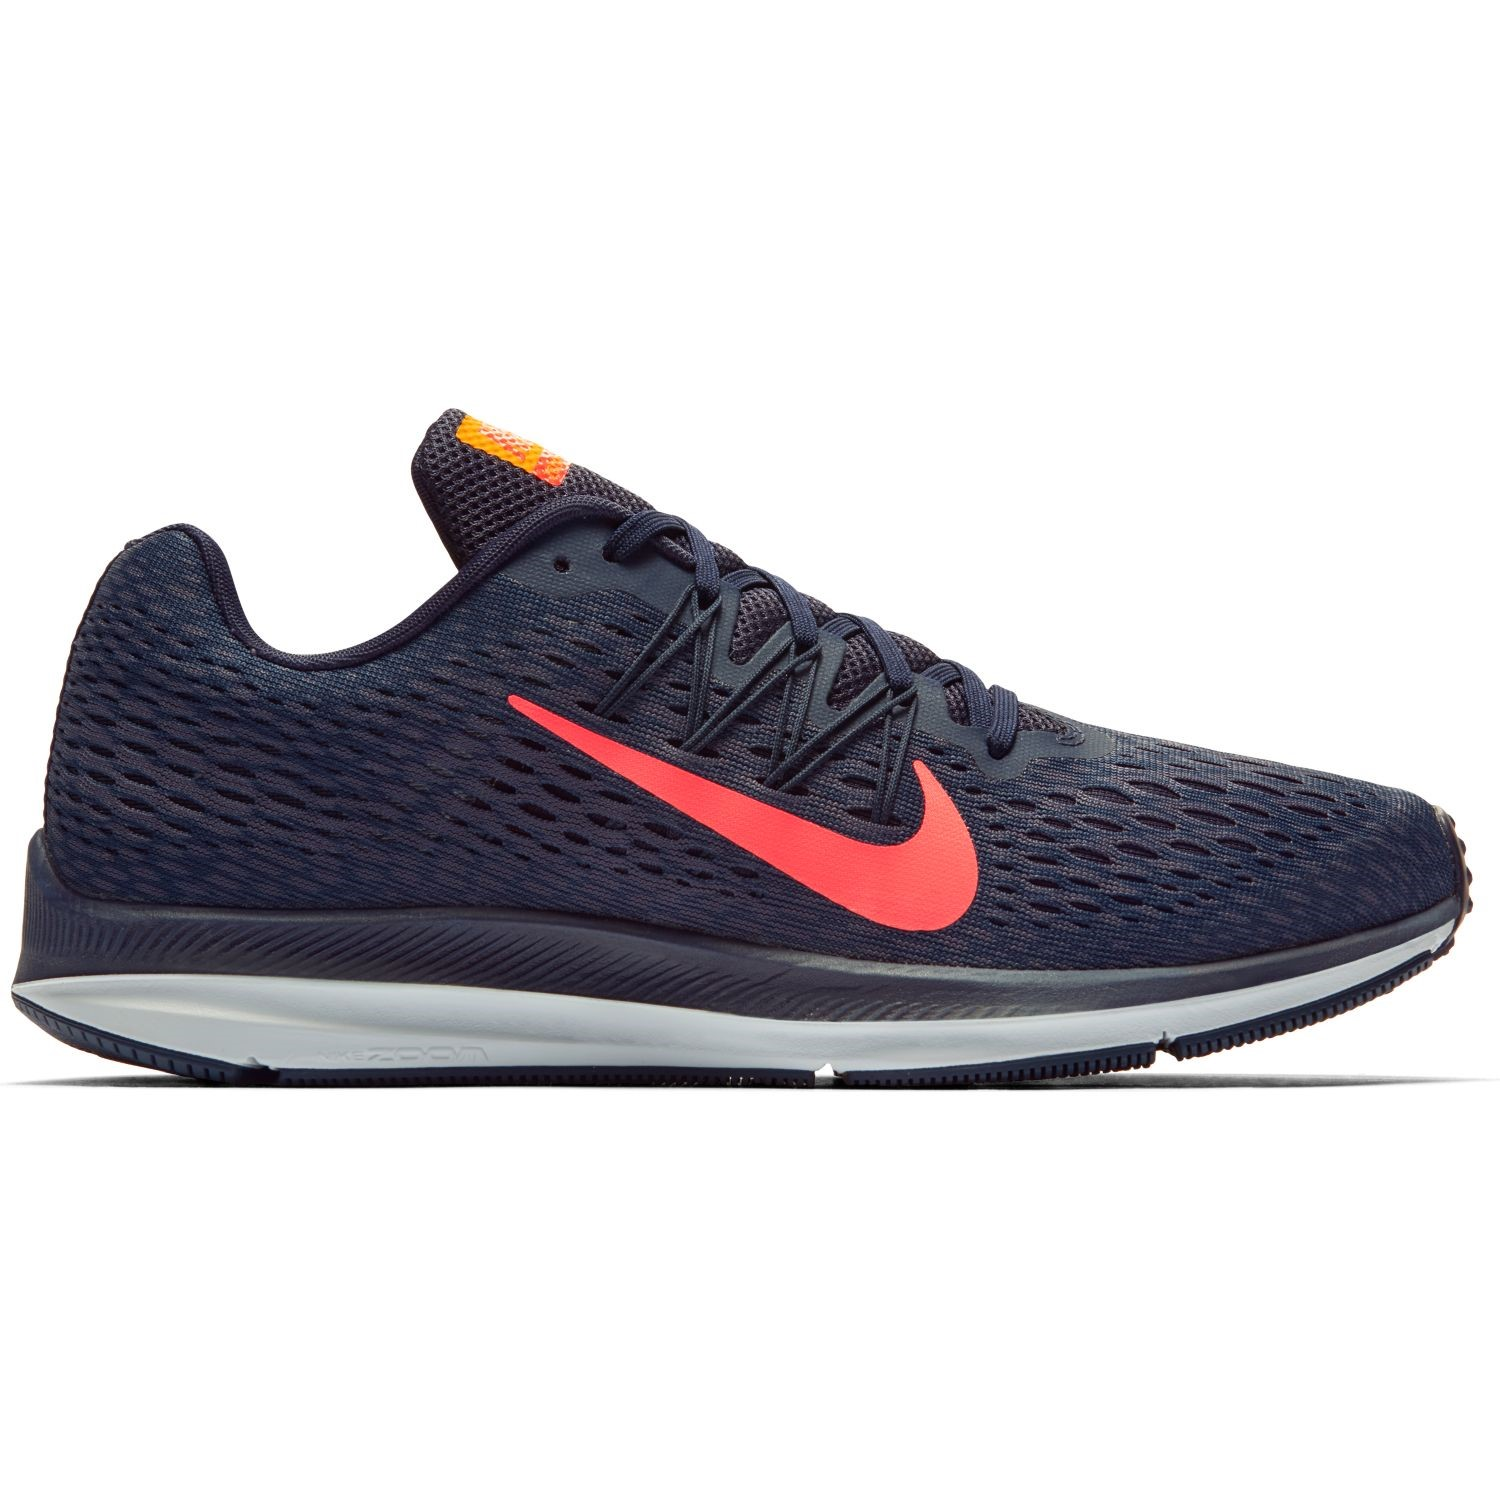 new concept b91ed 68cbc Nike Zoom Winflo 5 - Mens Running Shoes - Blackened Blue Flash Crimson